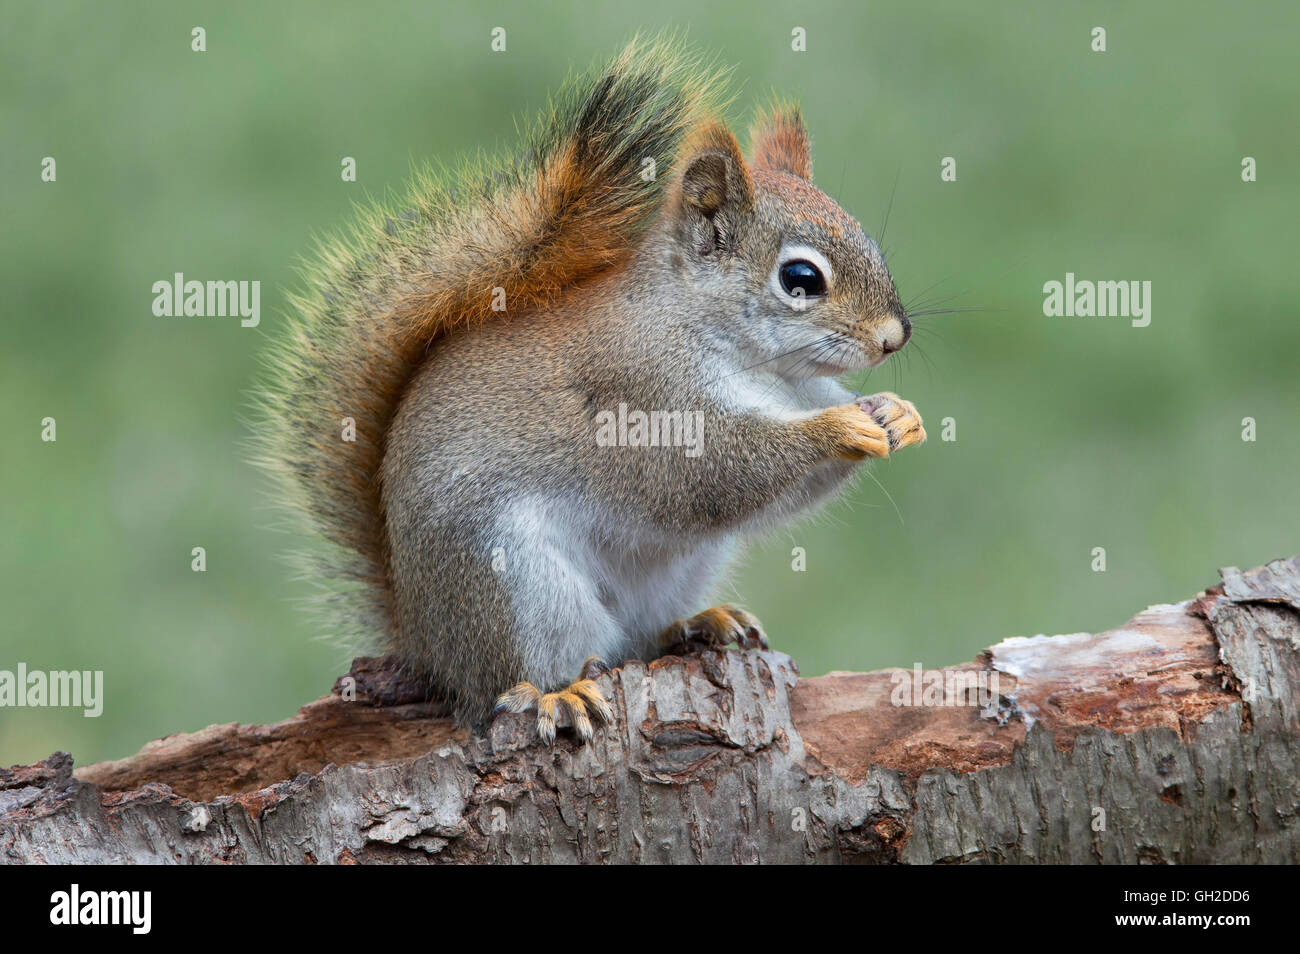 Eastern Red Squirrel eating nuts (Tamiasciurus or Sciurus hudsonicus), early Spring, E North America - Stock Image